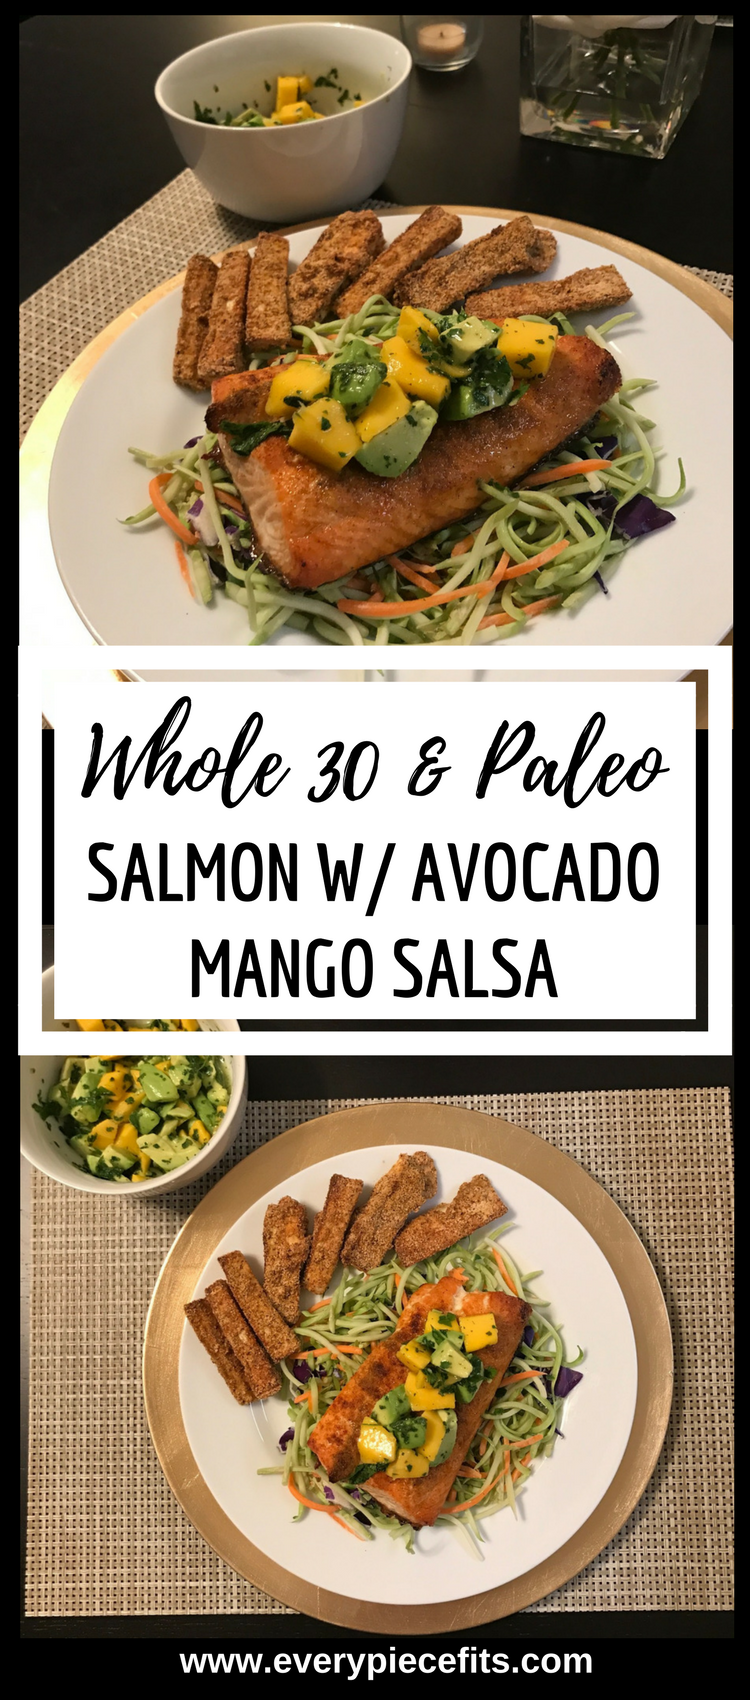 Whole 30 & Paleo Salmon with Avocado Mango Salsa.png